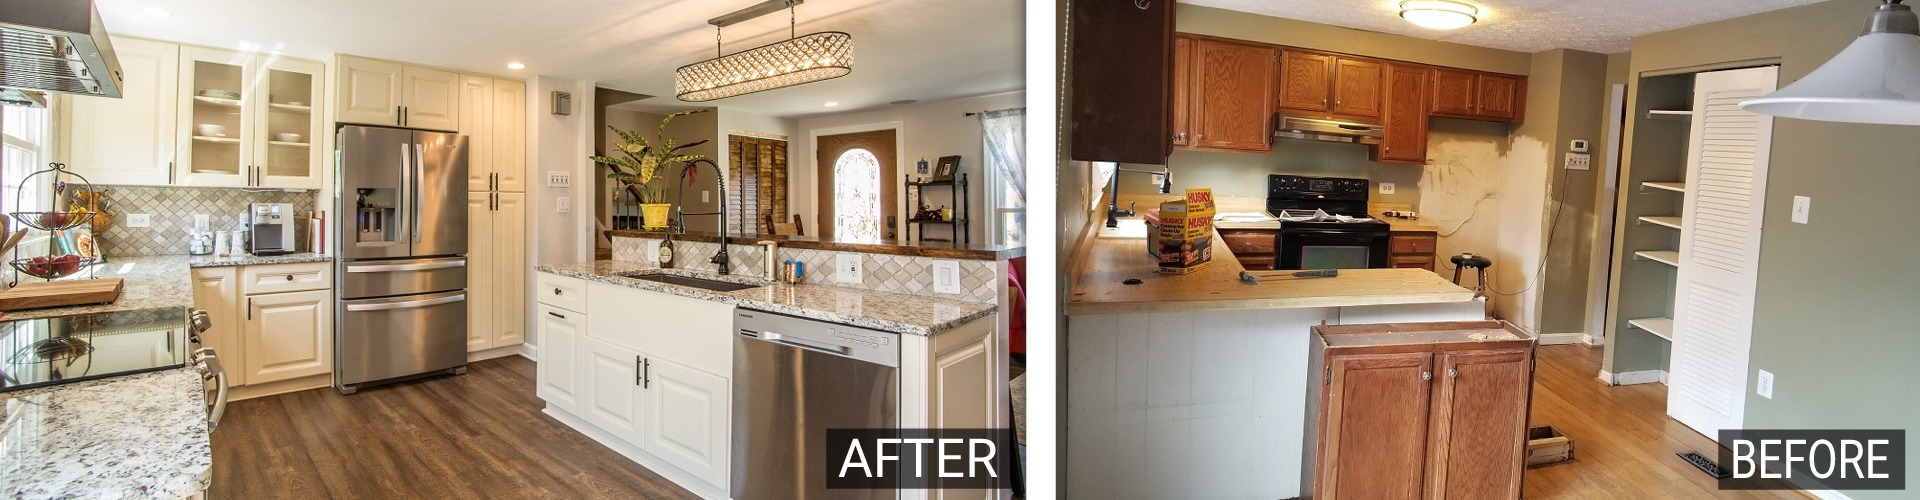 Before & After Go Pro Construction kitchen remodel